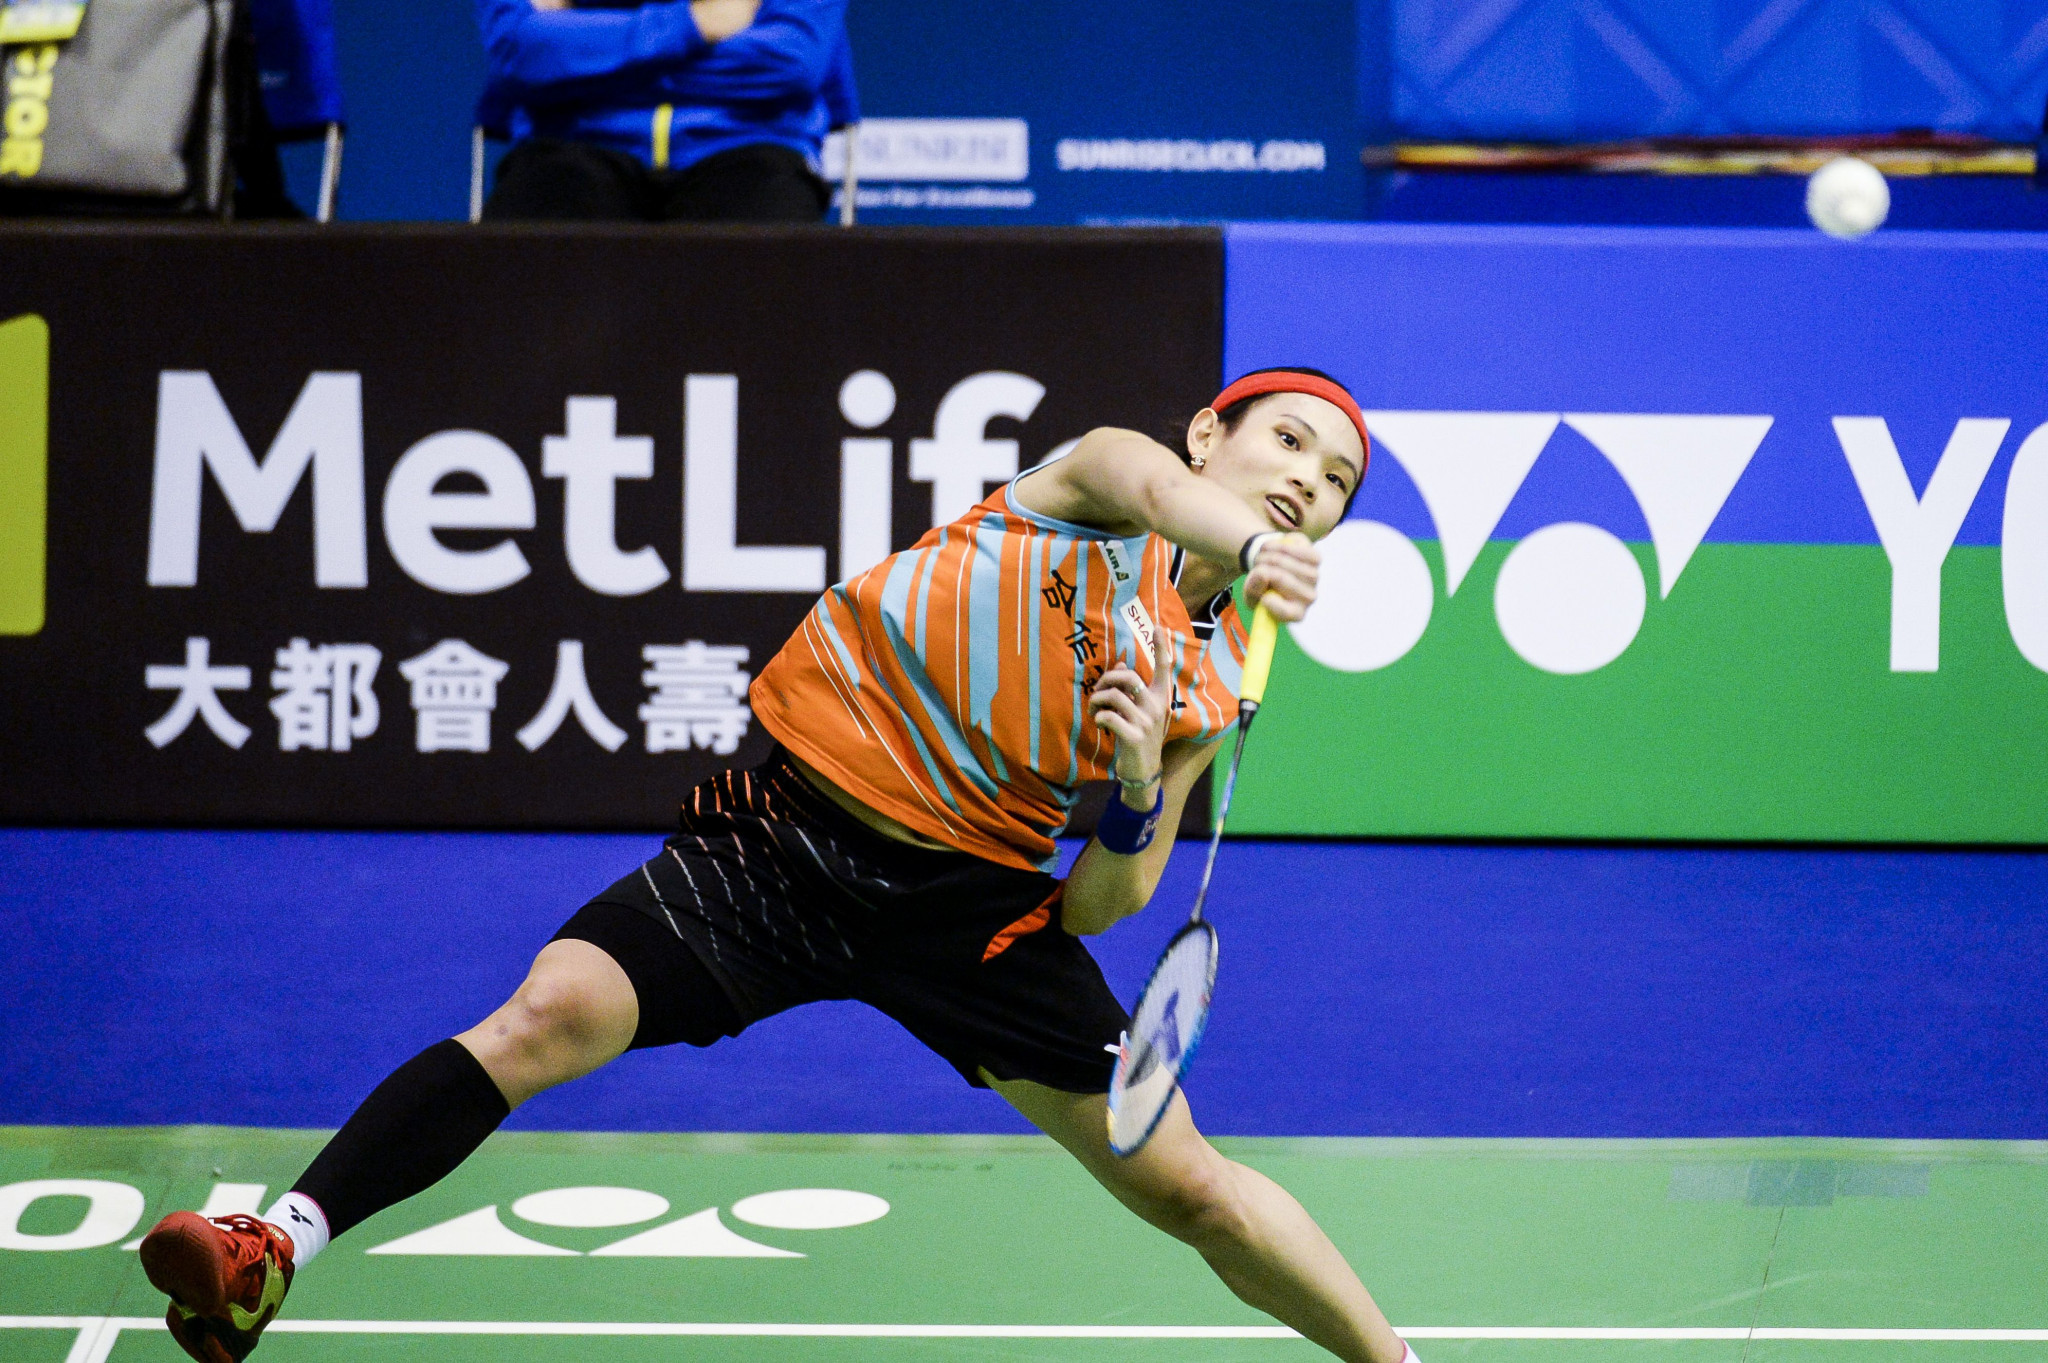 Few shocks in the singles on third day of BWF Hong Kong Open